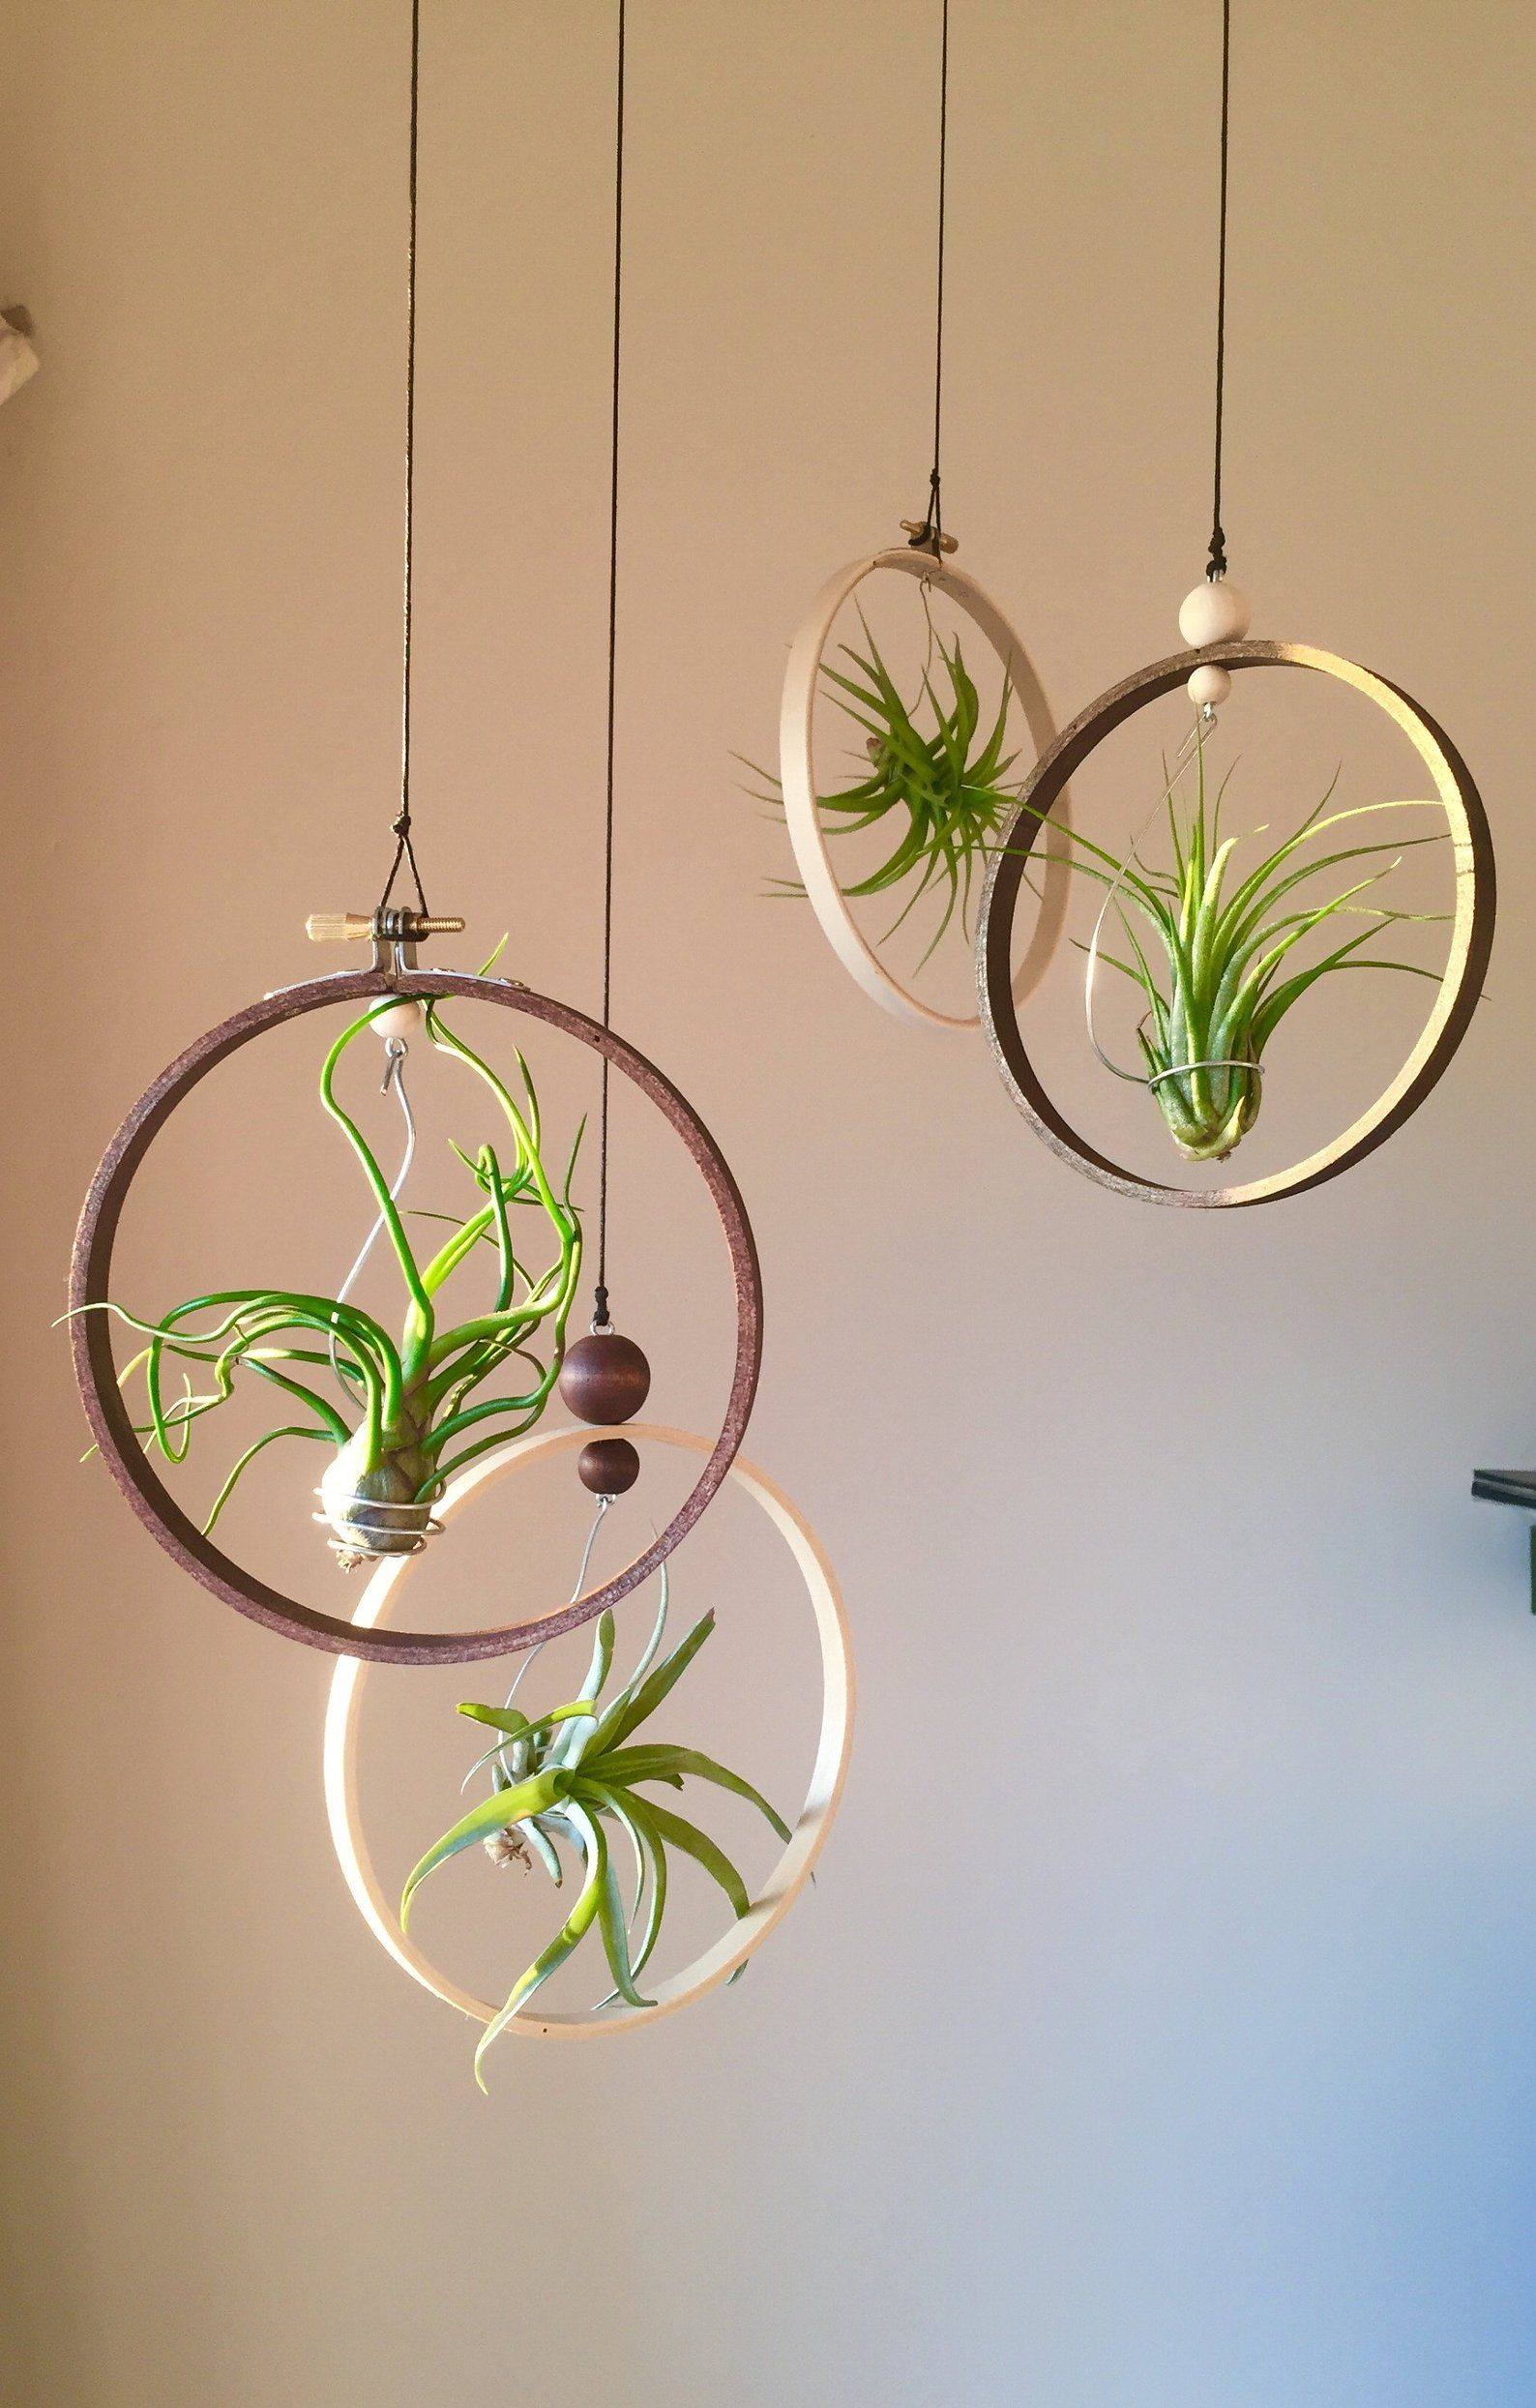 4Pack Mixed Air Plant Set Gift Idea Hanging Tillandsia  Etsy